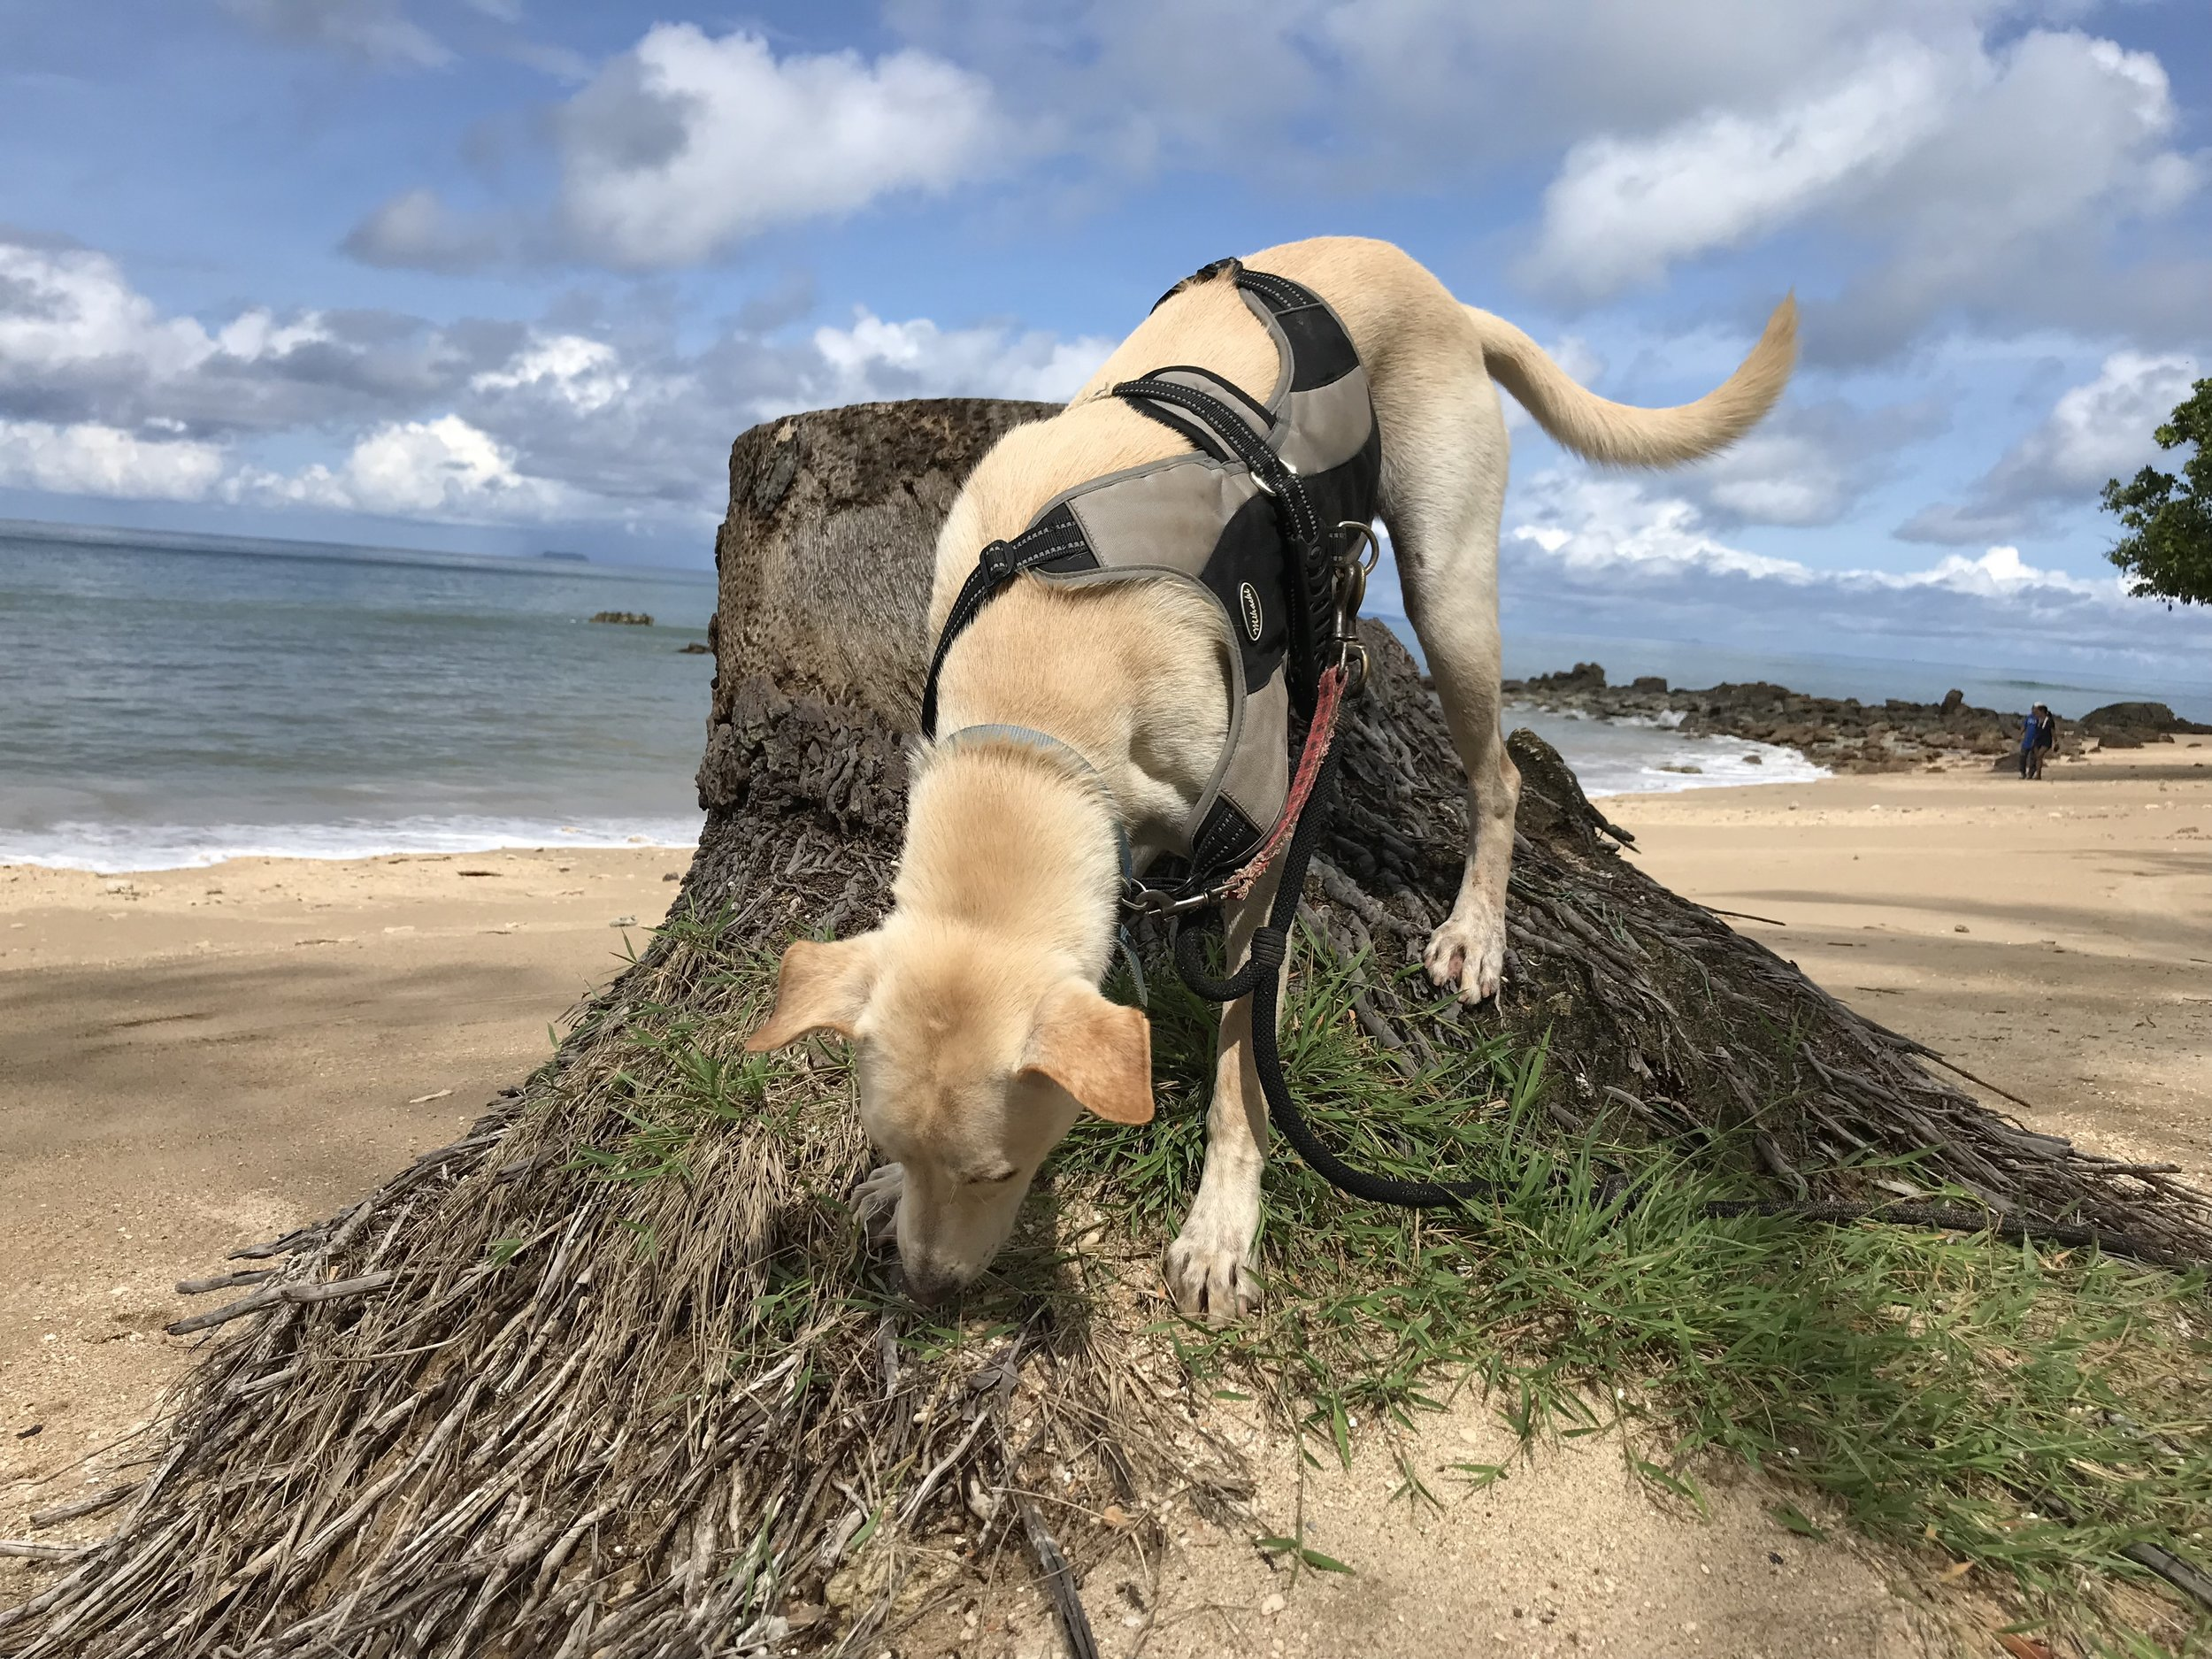 Adventurous Andrzej, a rescue dog in Thailand